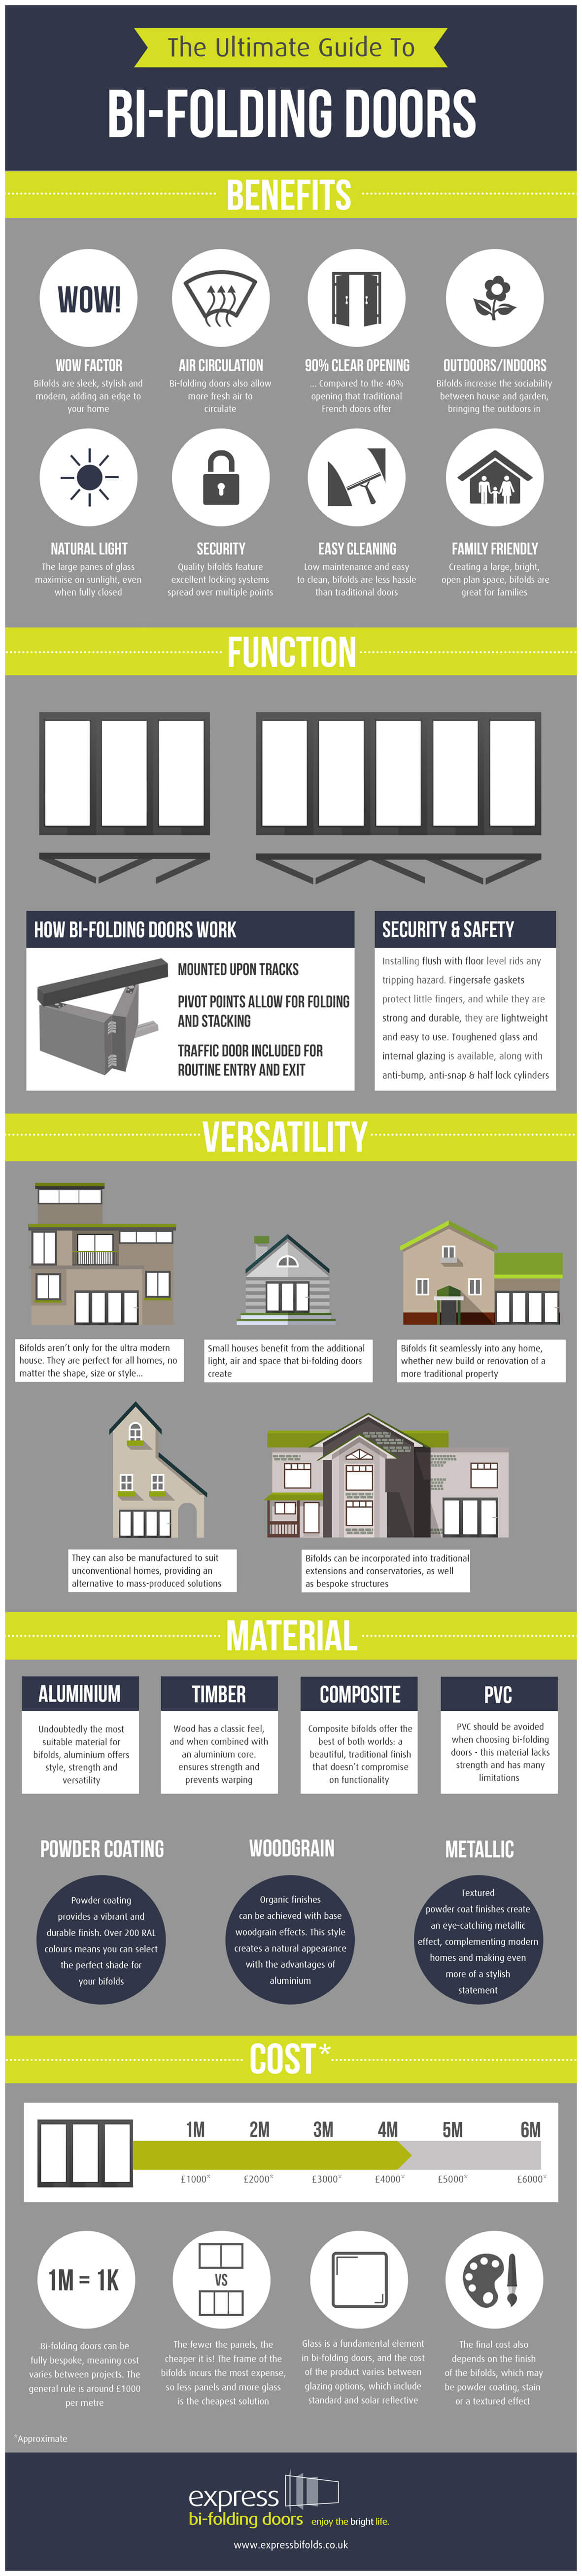 The_Ultimate_Guide_To_Bi-folding_Doors-infographic